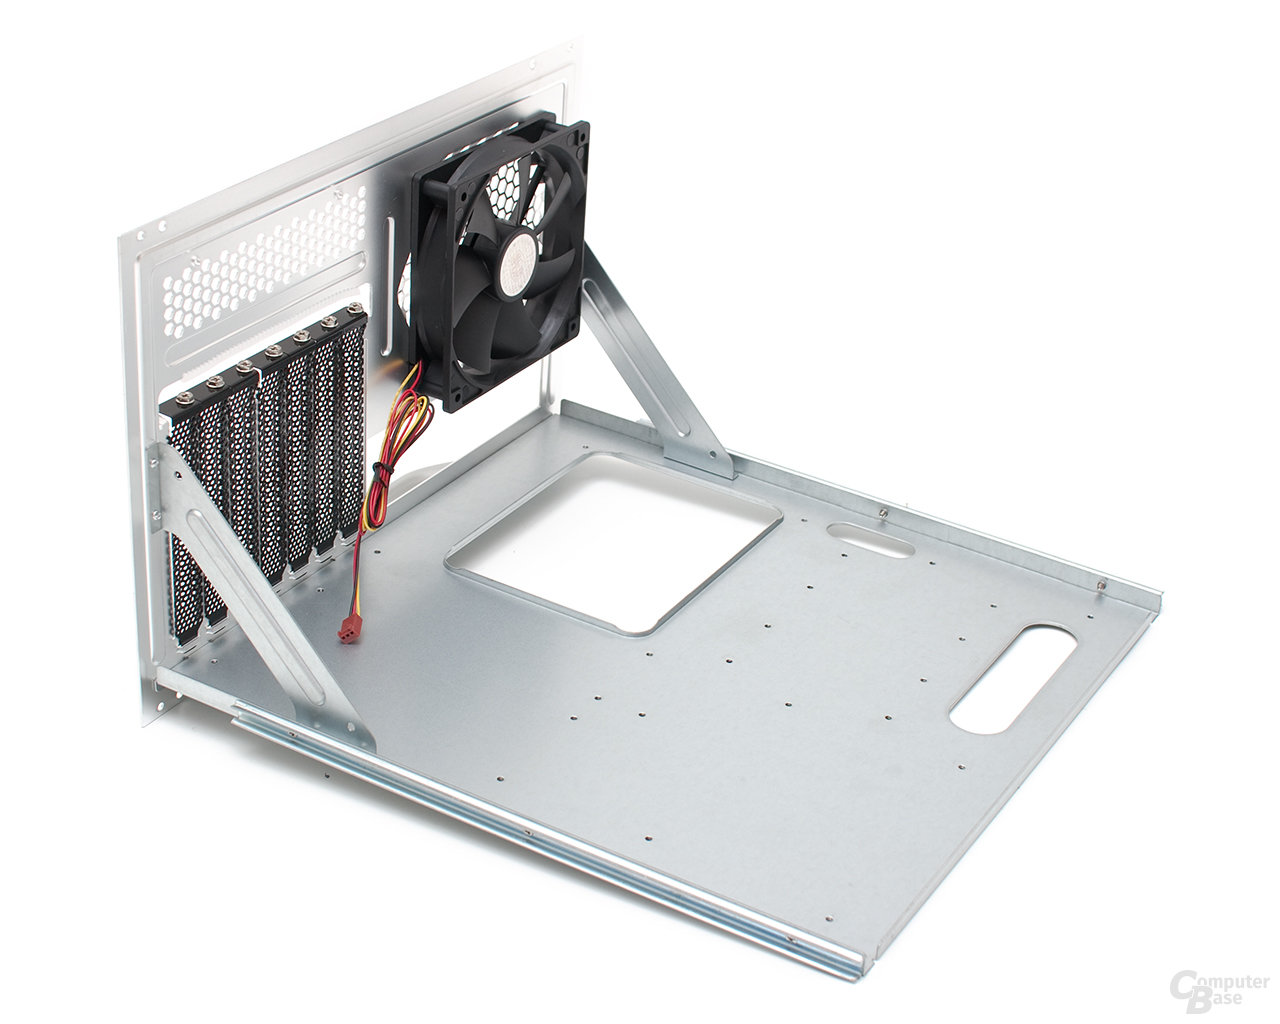 Cooler Master ATCS 840 – Mainboardtray